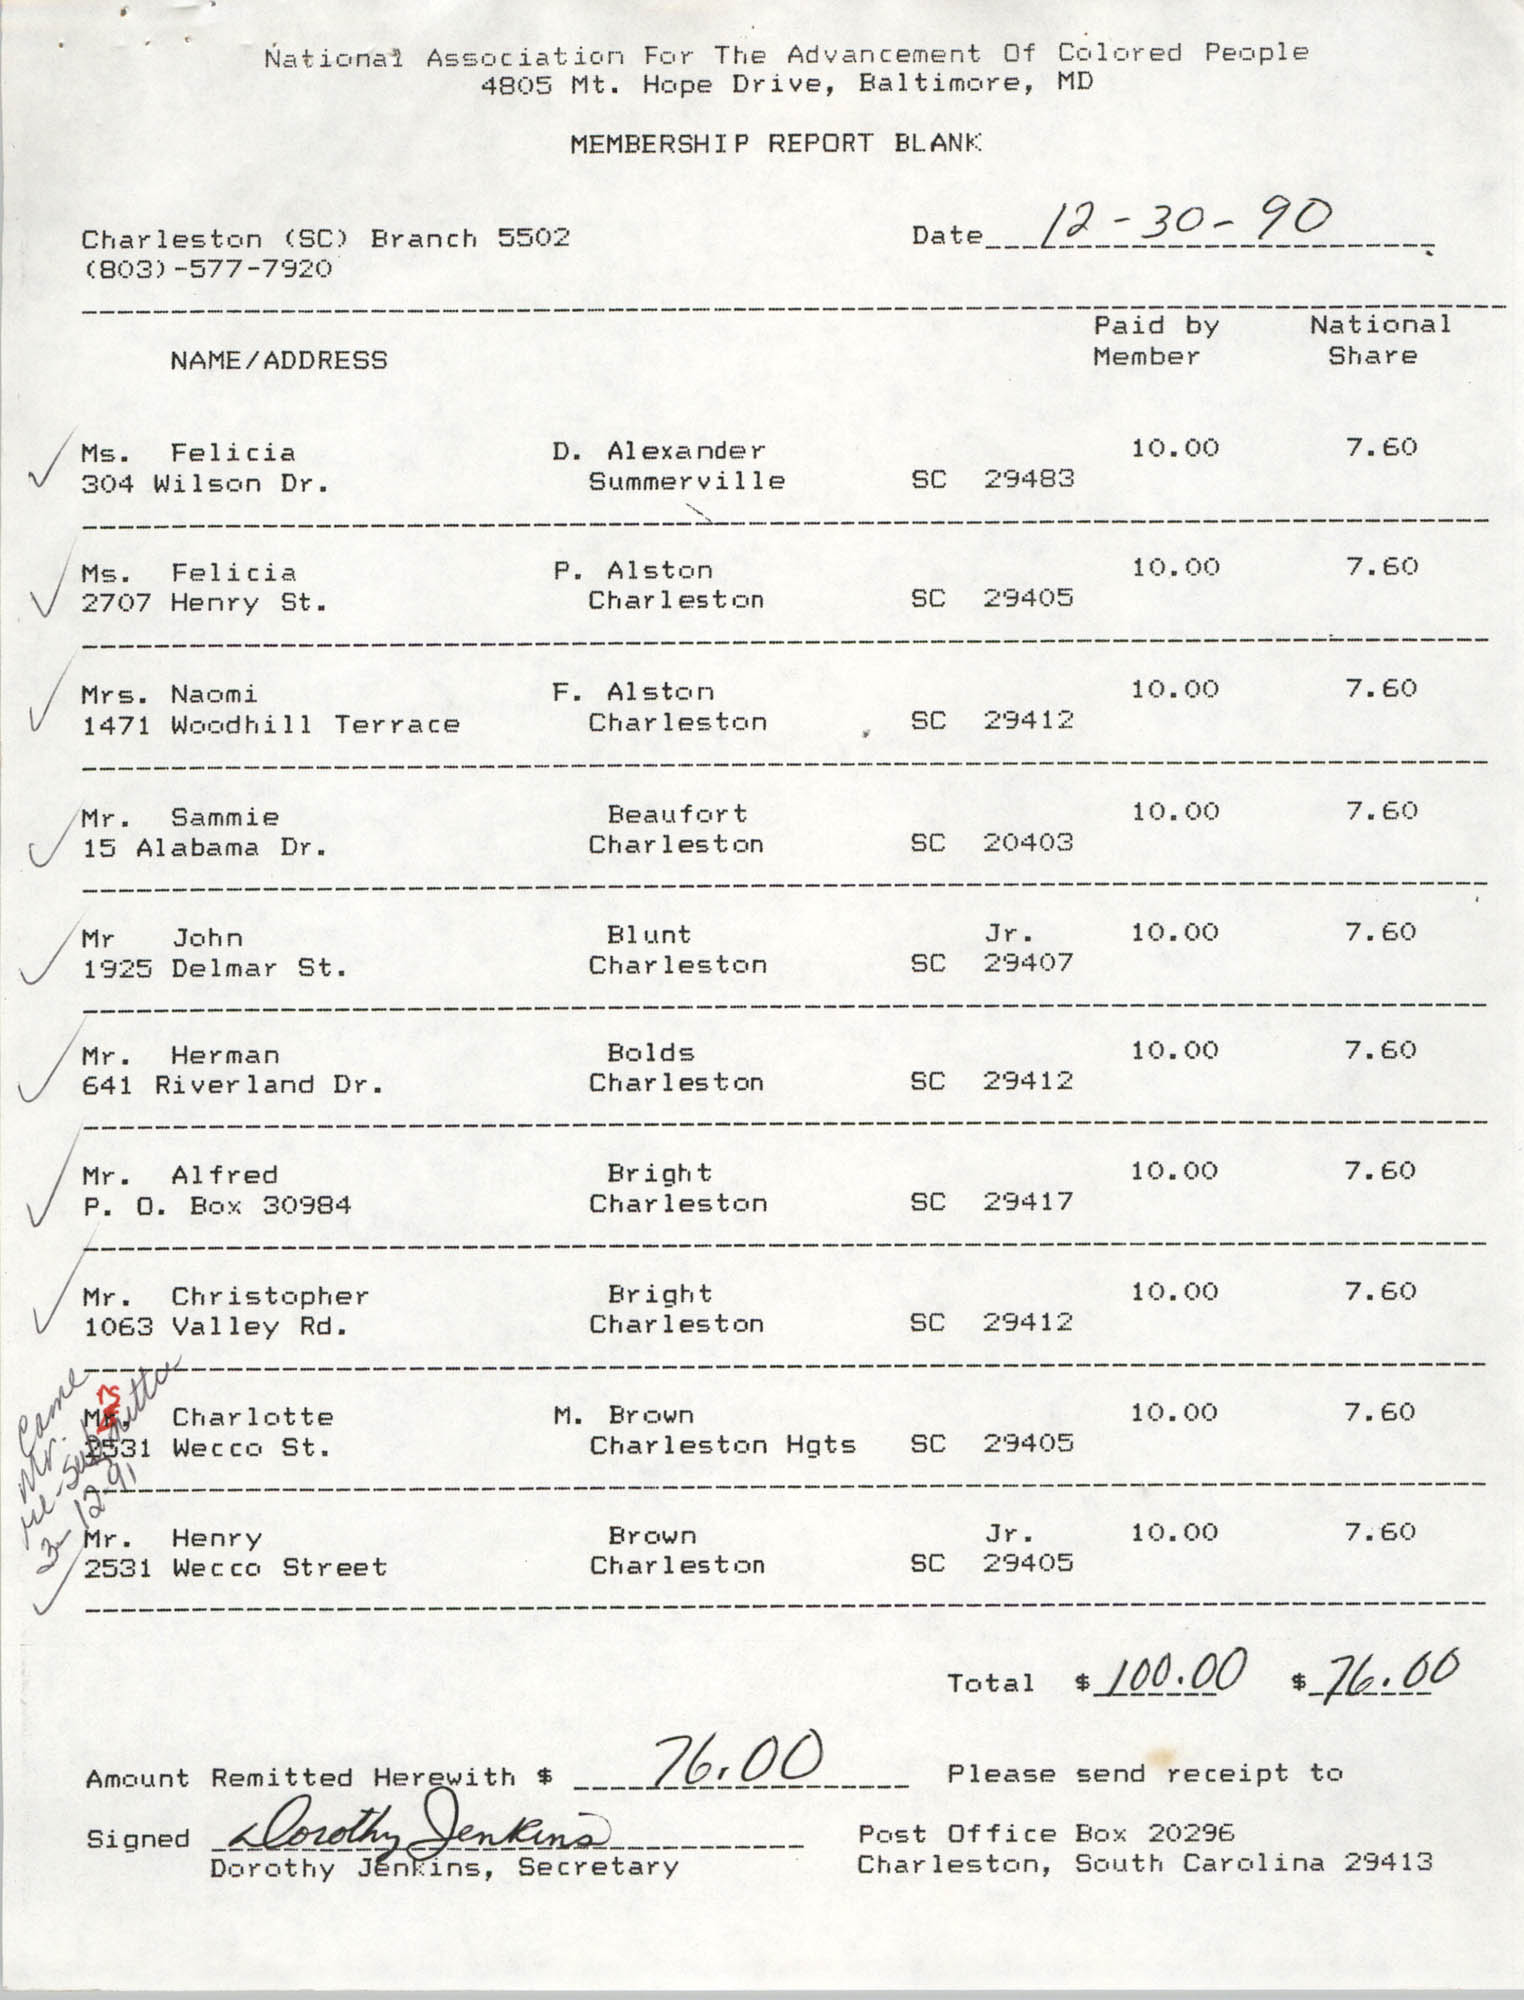 Membership Report Blank, Charleston Branch of the NAACP, Dorothy Jenkins, December 30, 1990